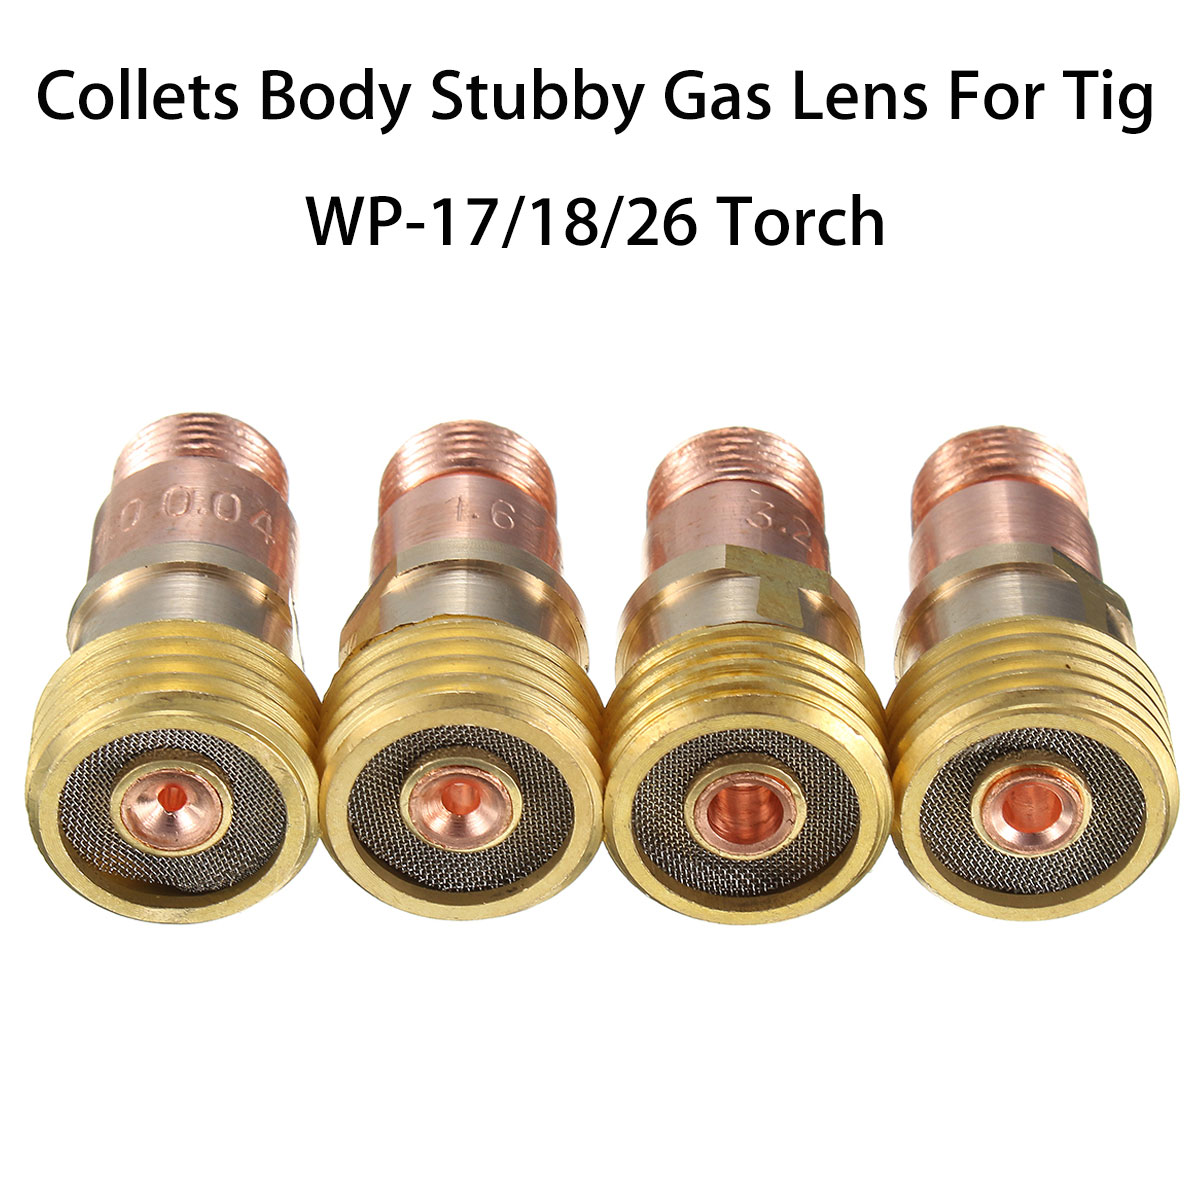 Forgelo Brass Collets Body Stubby Gas Lens Connector With Mesh For Tig WP-17/18/26 Torch Welding Accessories